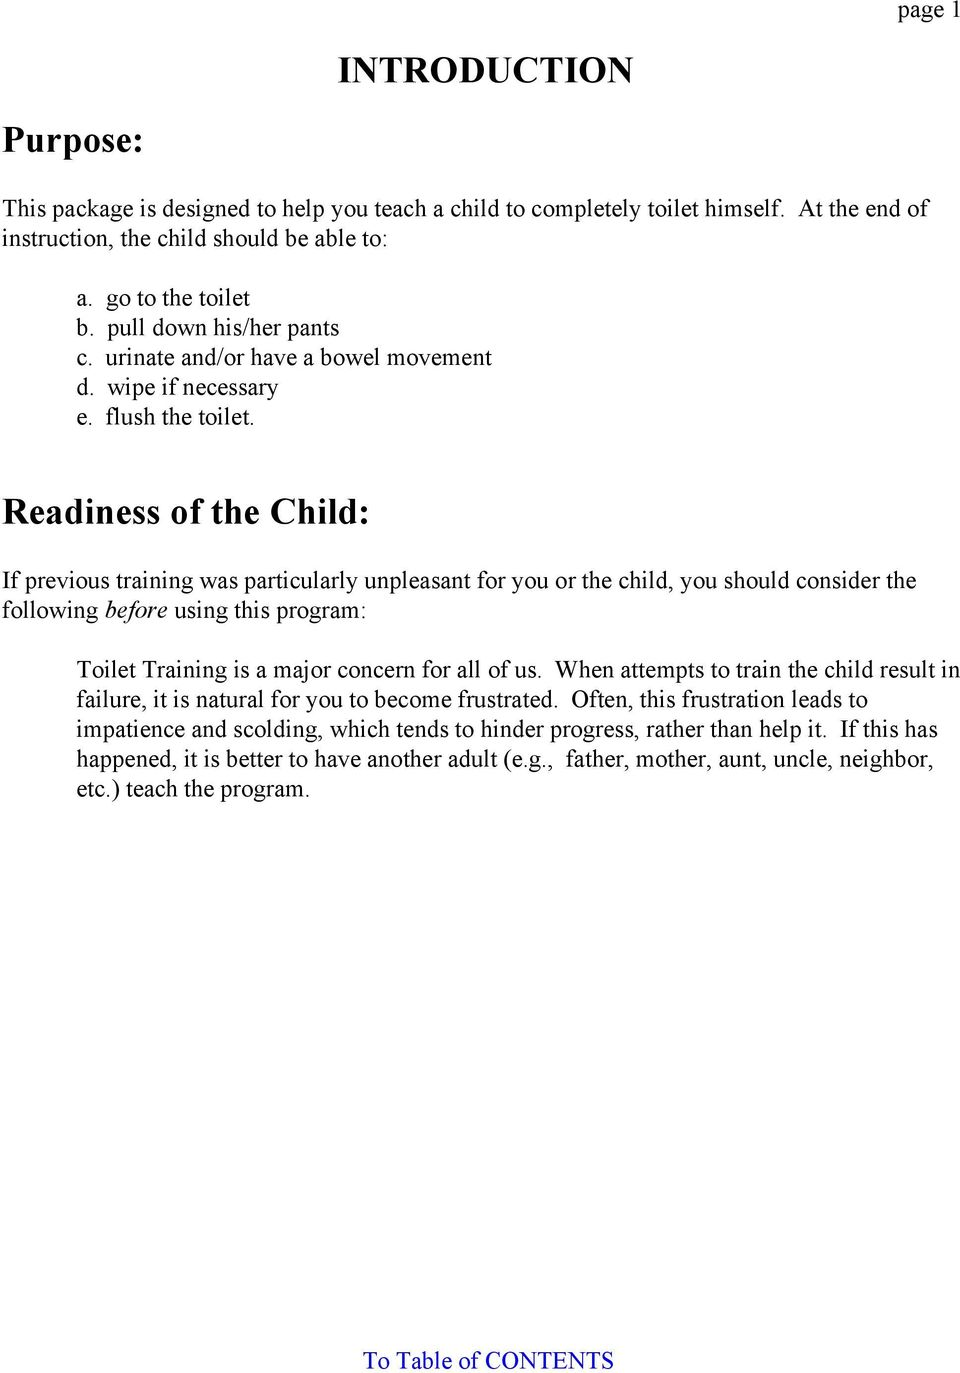 Readiness of the Child: If previous training was particularly unpleasant for you or the child, you should consider the following before using this program: Toilet Training is a major concern for all